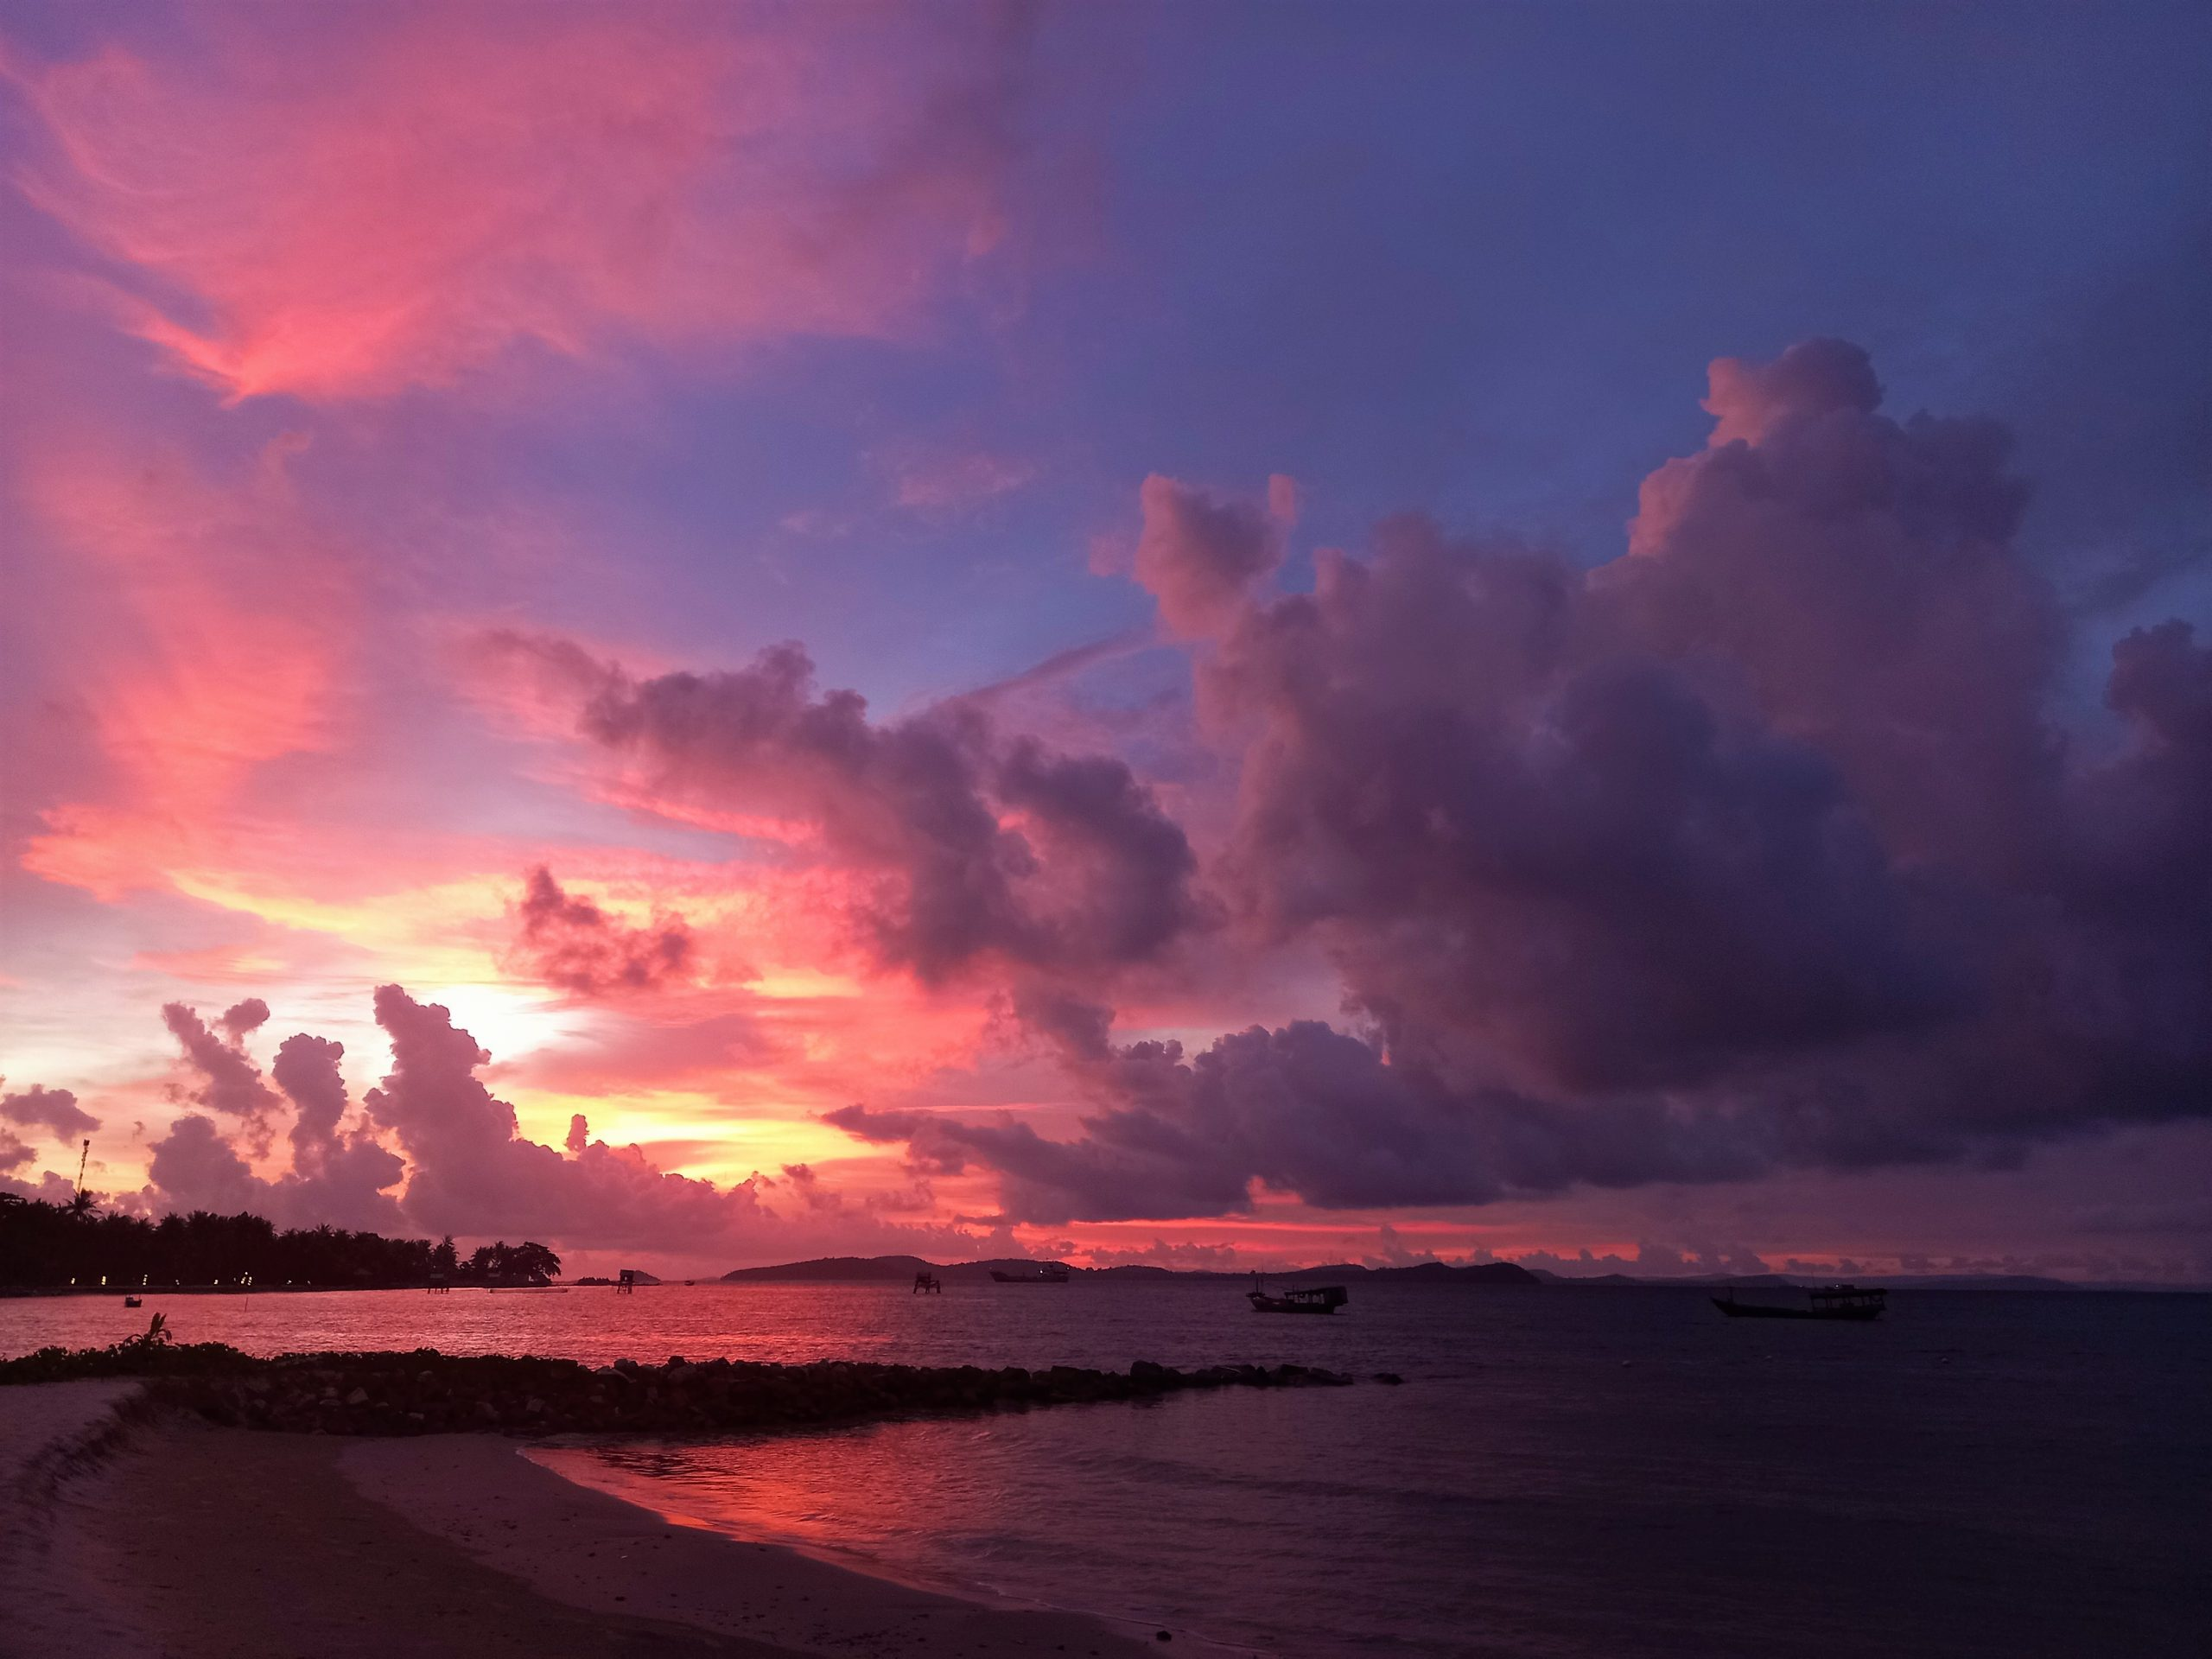 Sunset after a tropical downpour at the tail end of rainy season in southern Vietnam